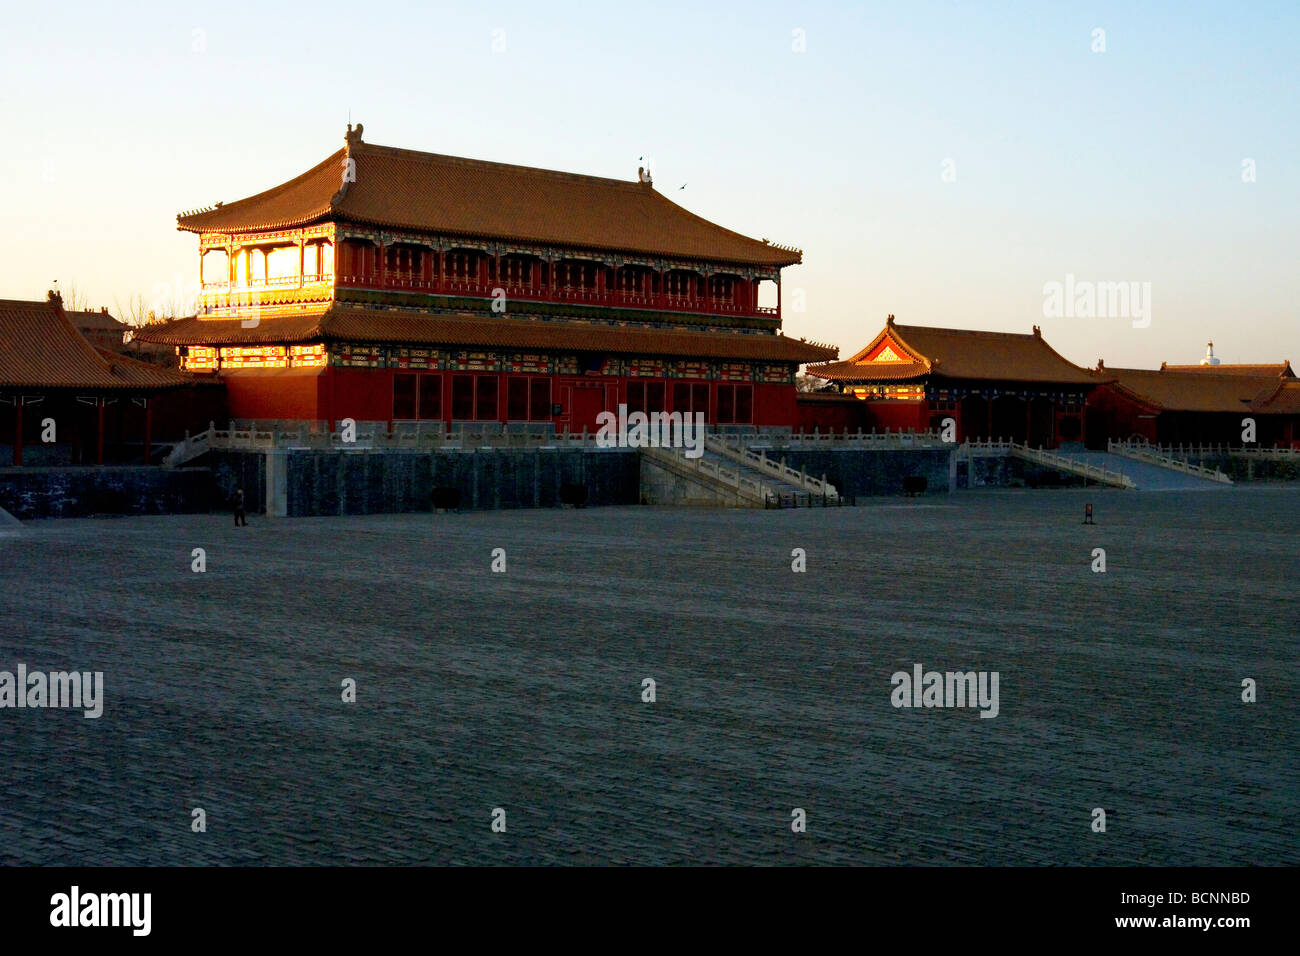 Hall of Glorifying Righteousness, Forbidden City, Beijing, China - Stock Image